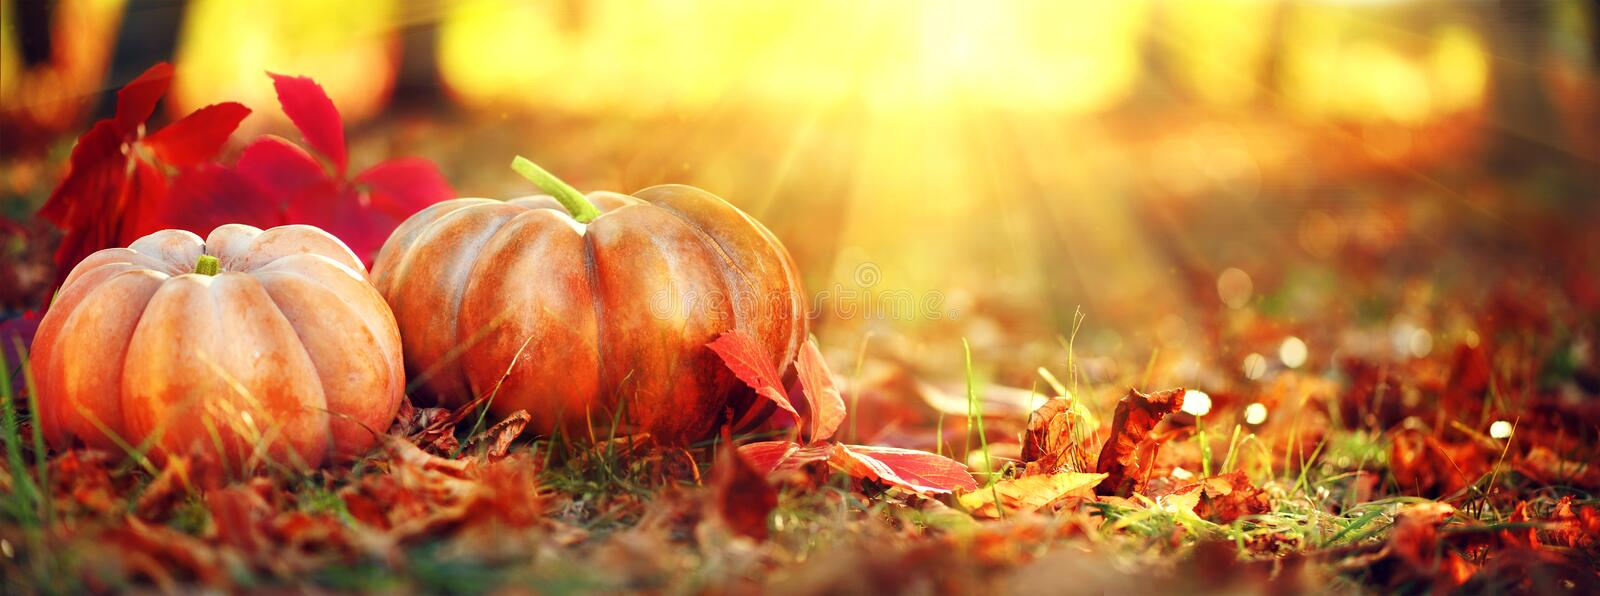 Download Autumn Halloween Pumpkins. Orange Pumpkins Over Nature Background Stock Photo - Image of leisure, design: 78542000